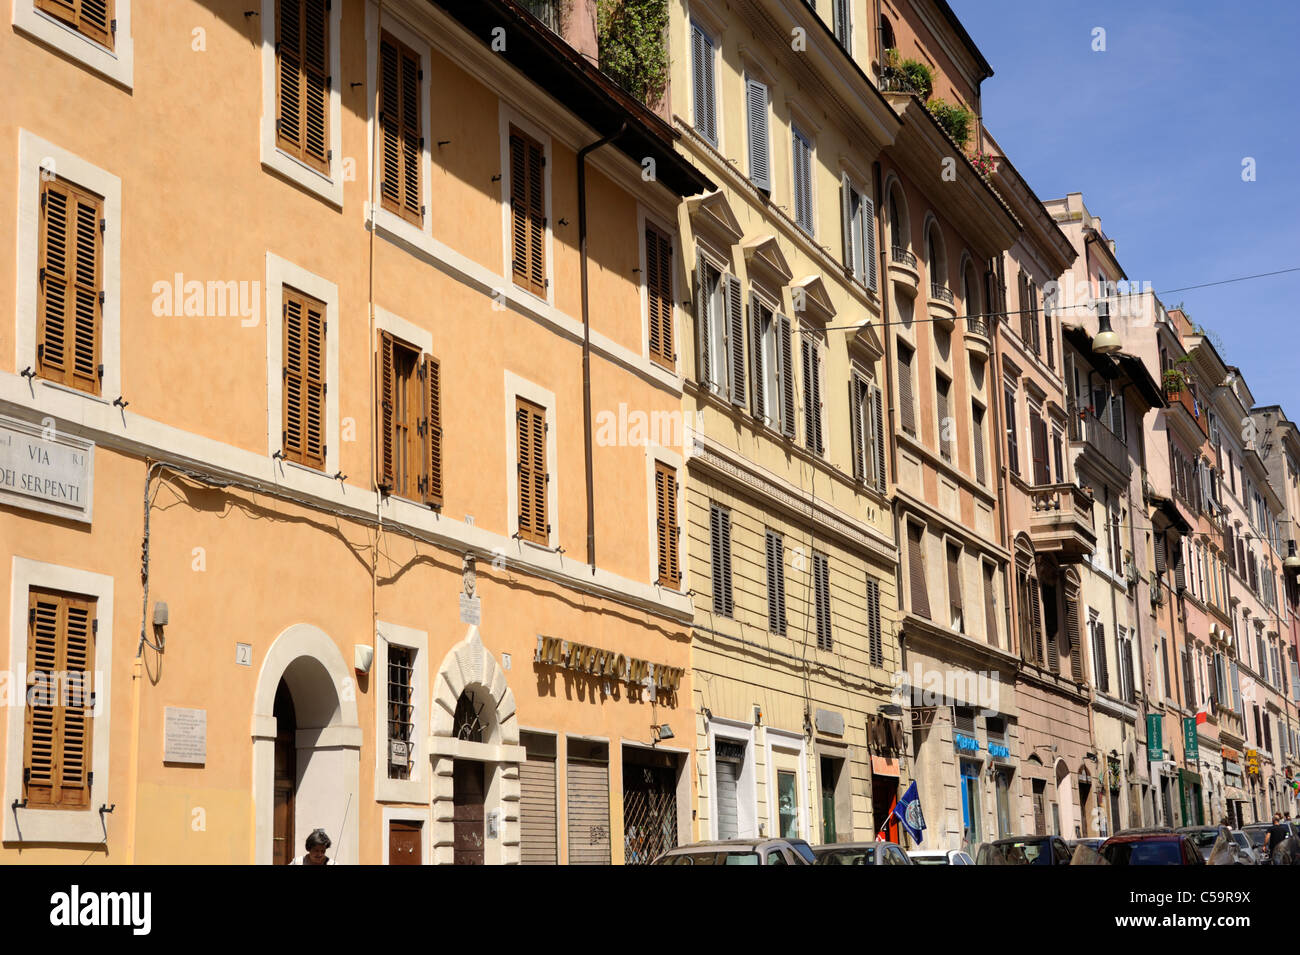 italy, rome, monti neighbourhood, via dei serpenti - Stock Image